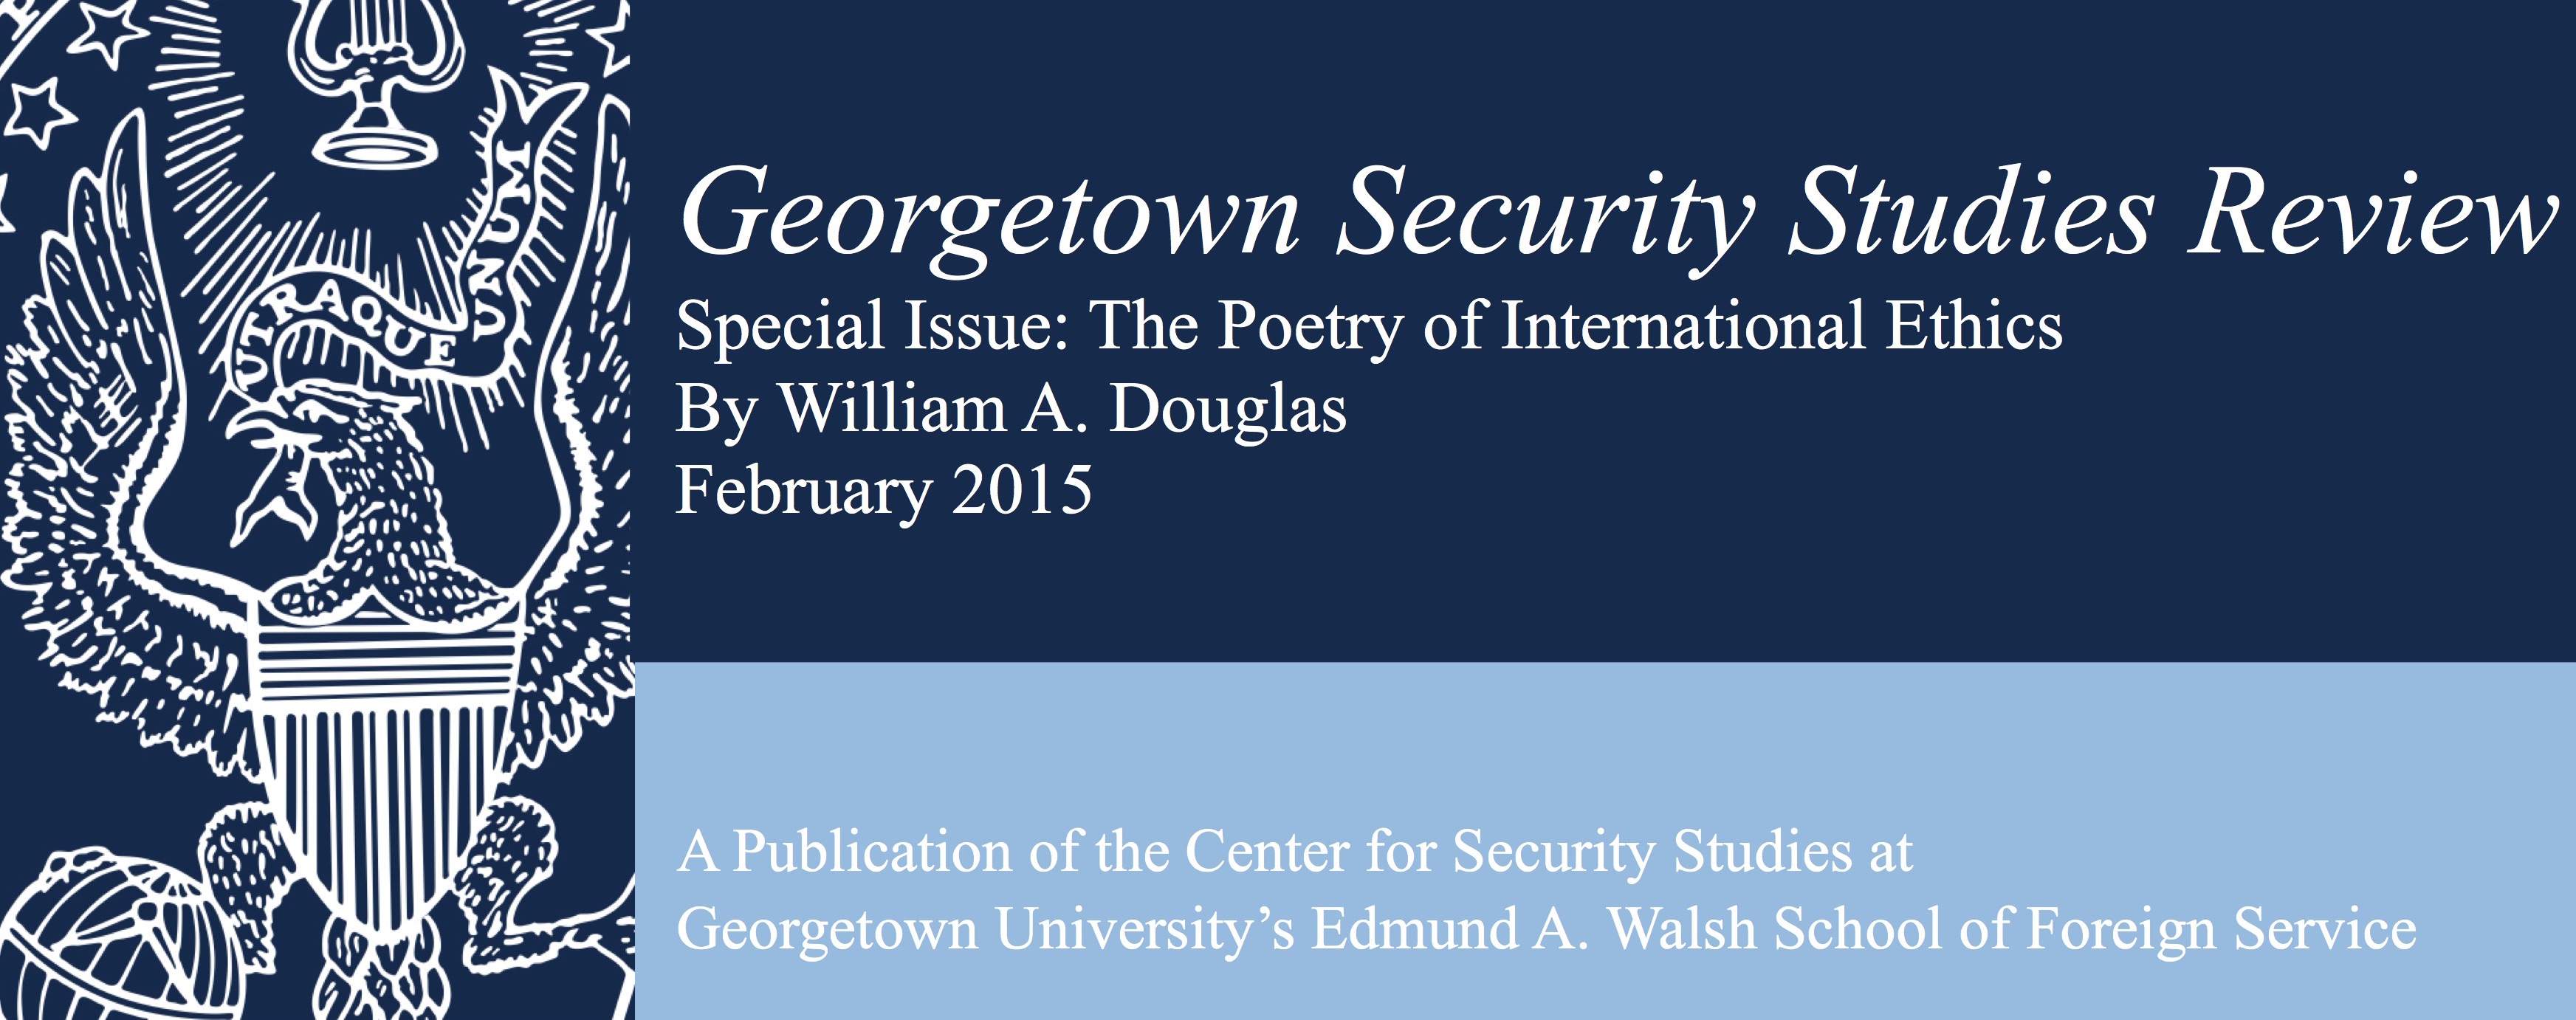 Where The Pen Meets The Sword: The Role Of Poetry In The Study Of International Affairs